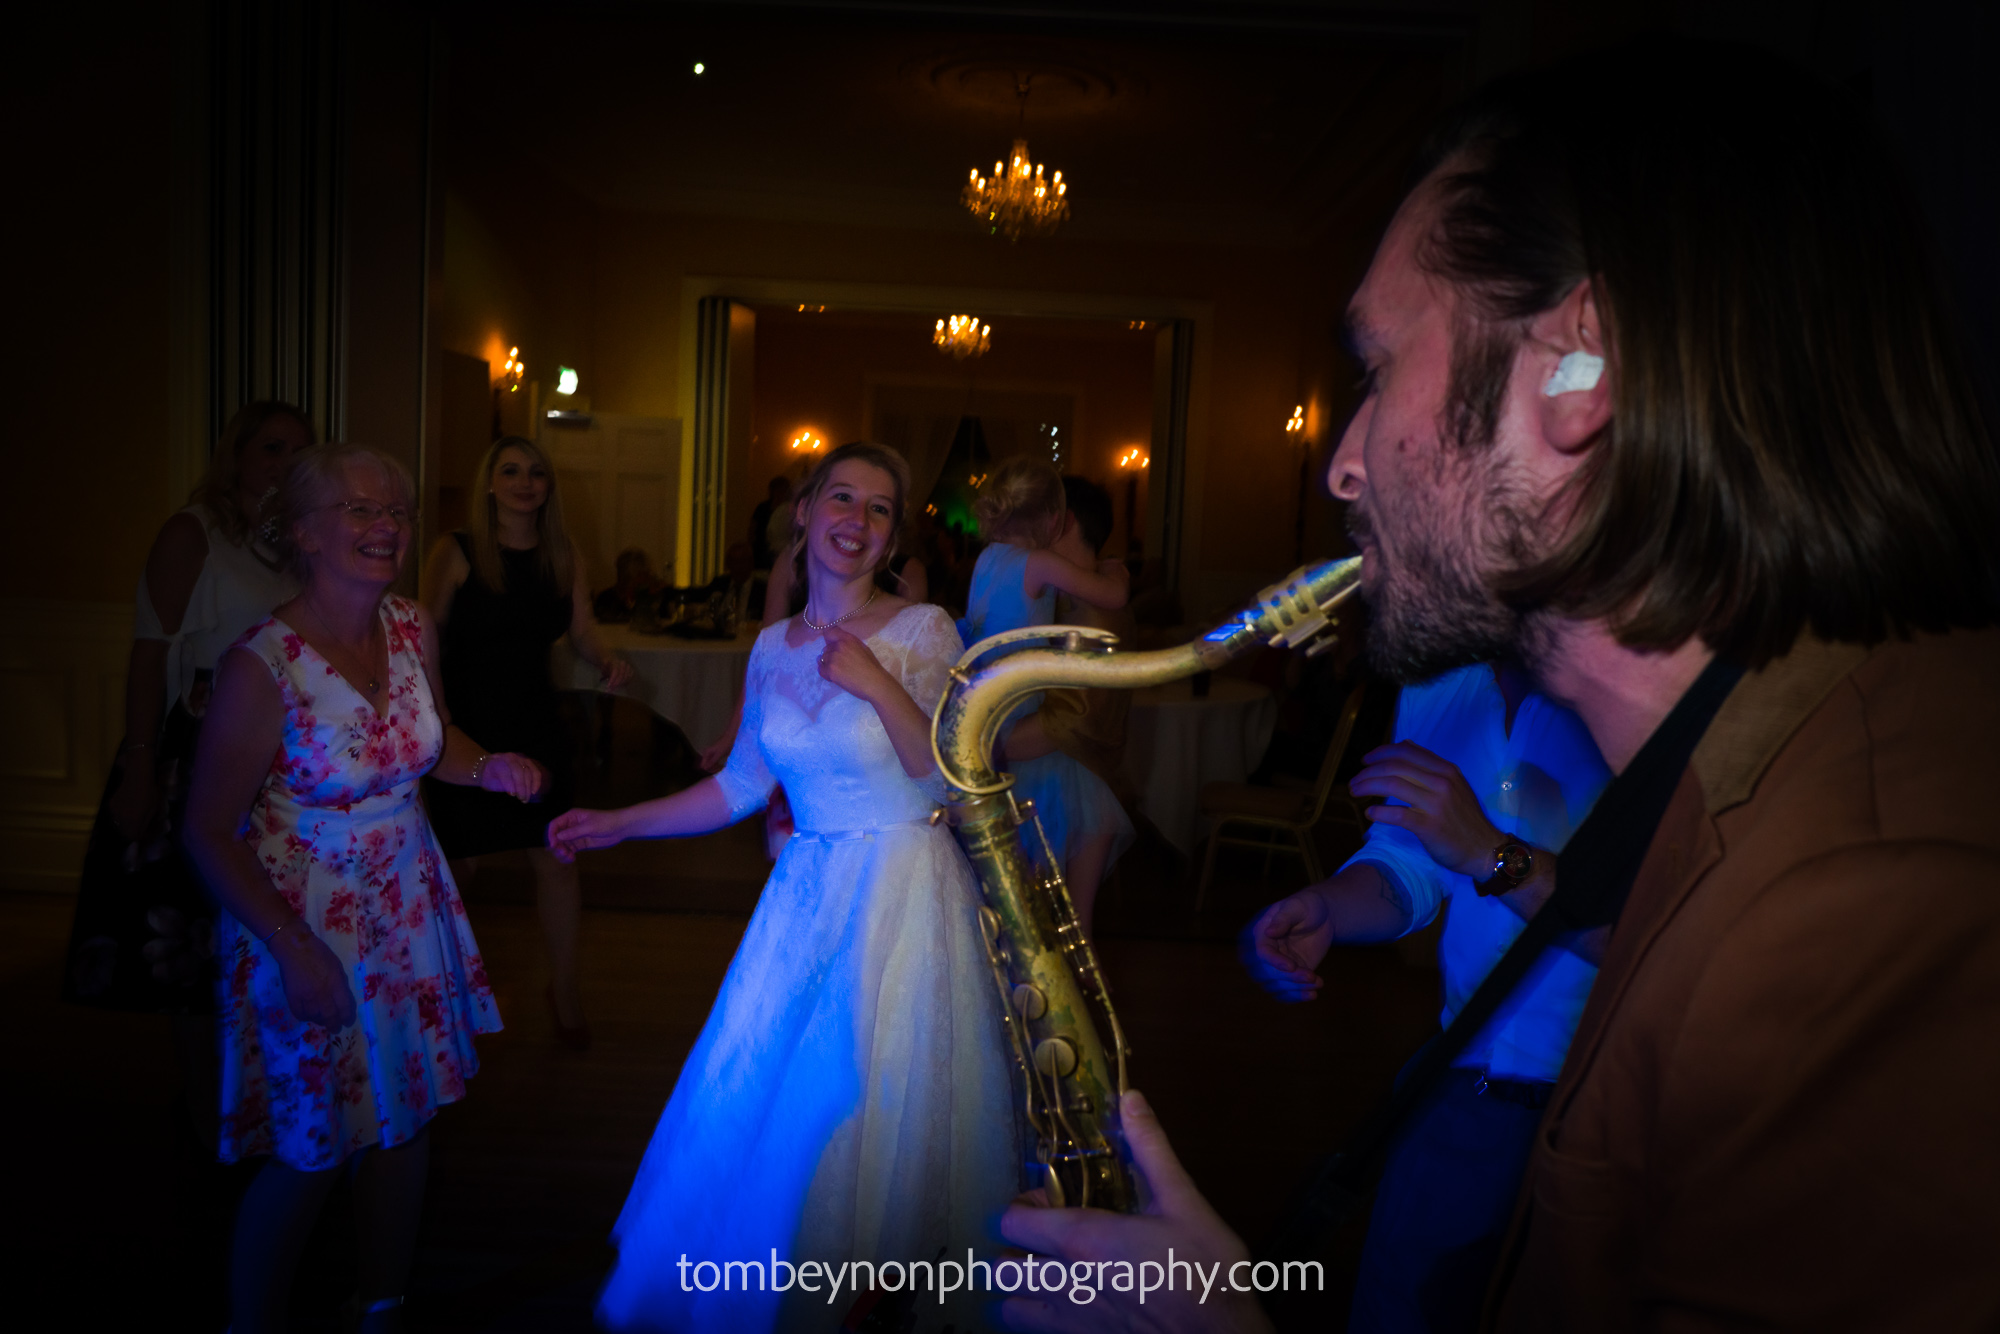 Sax on the dance floor with bride